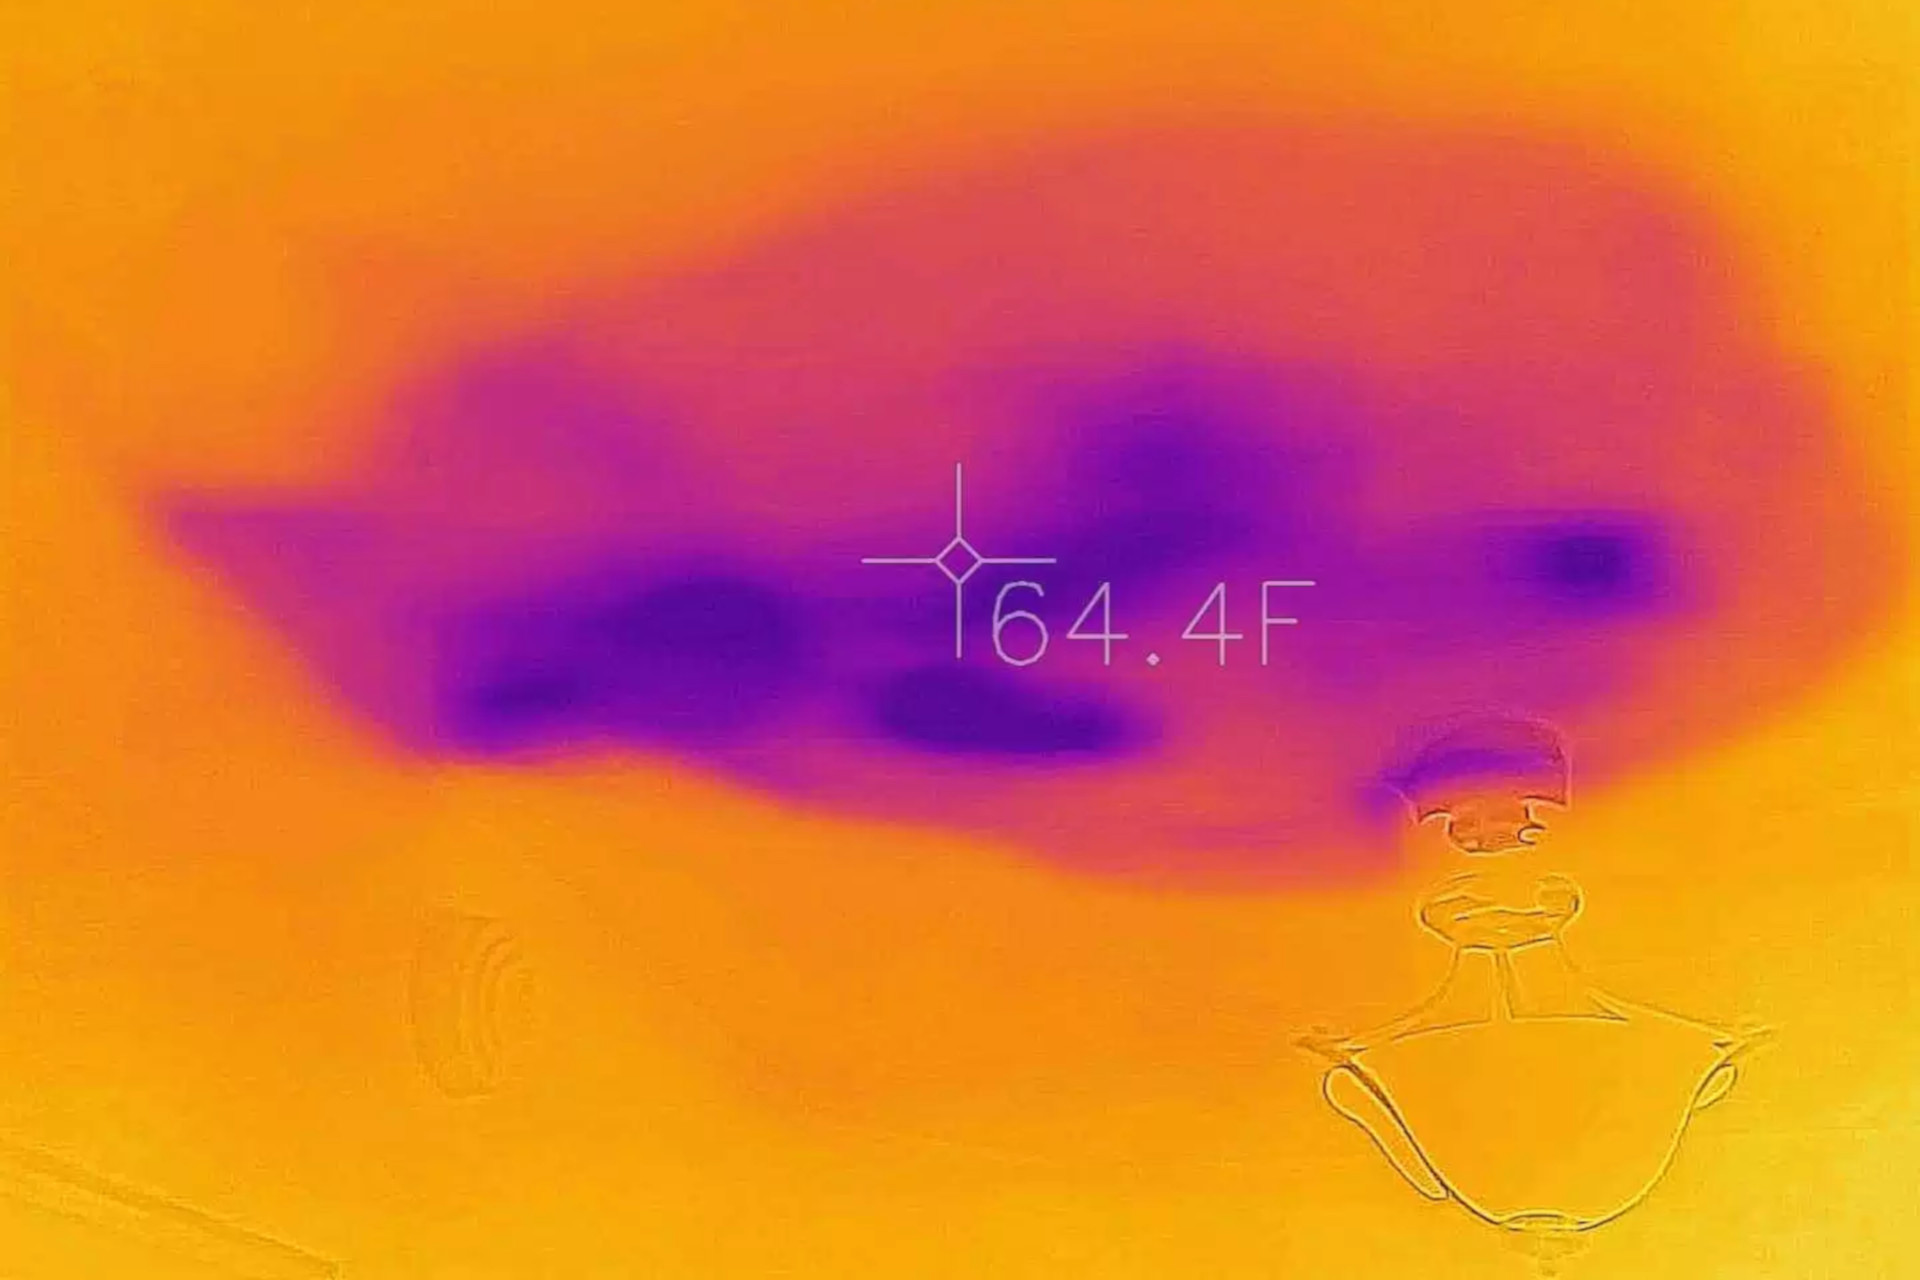 Mould detection via thermal imaging